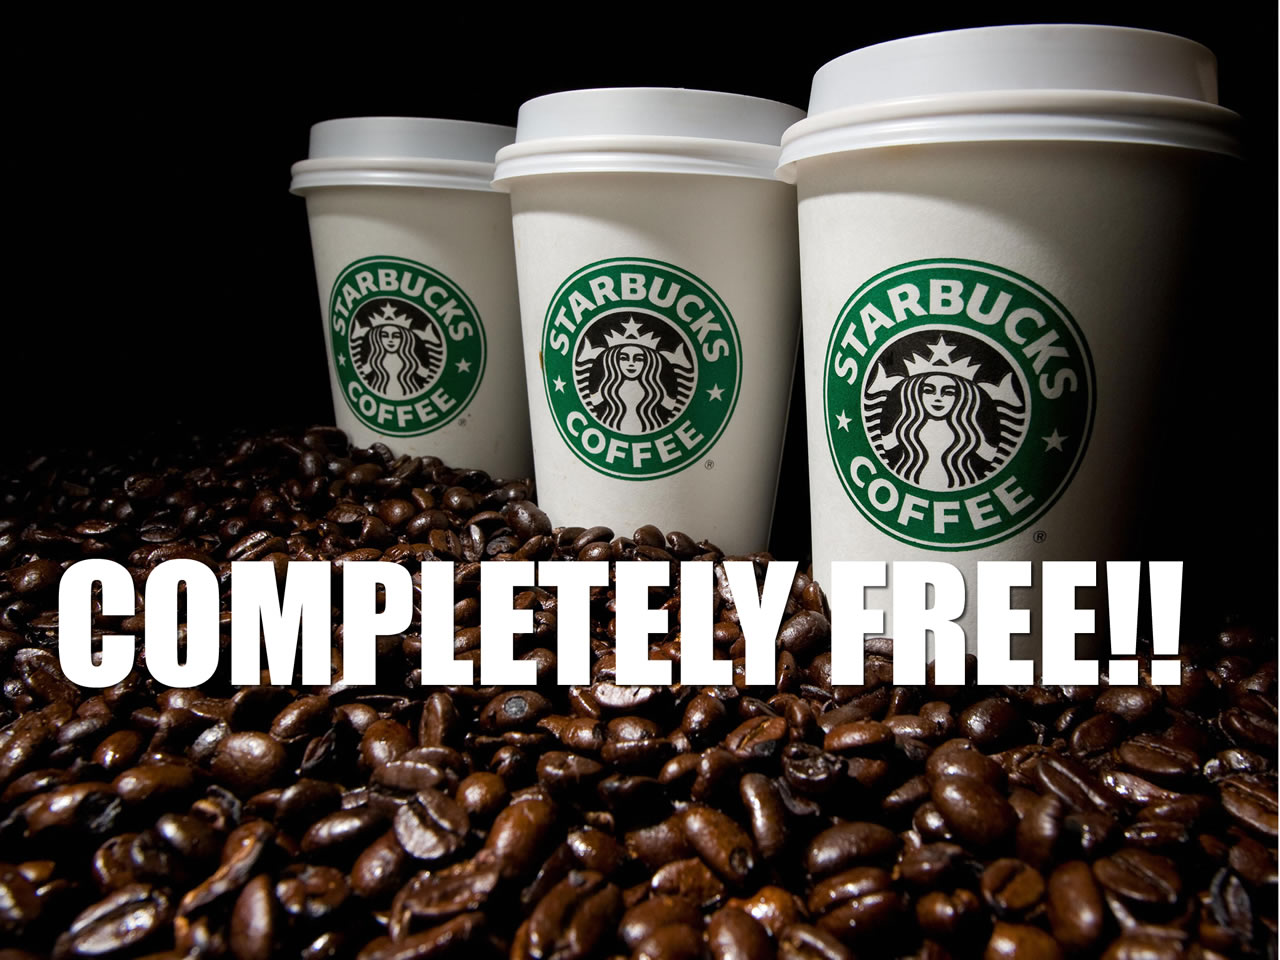 How to get a Free Starbucks Drinks 365 Days a Year